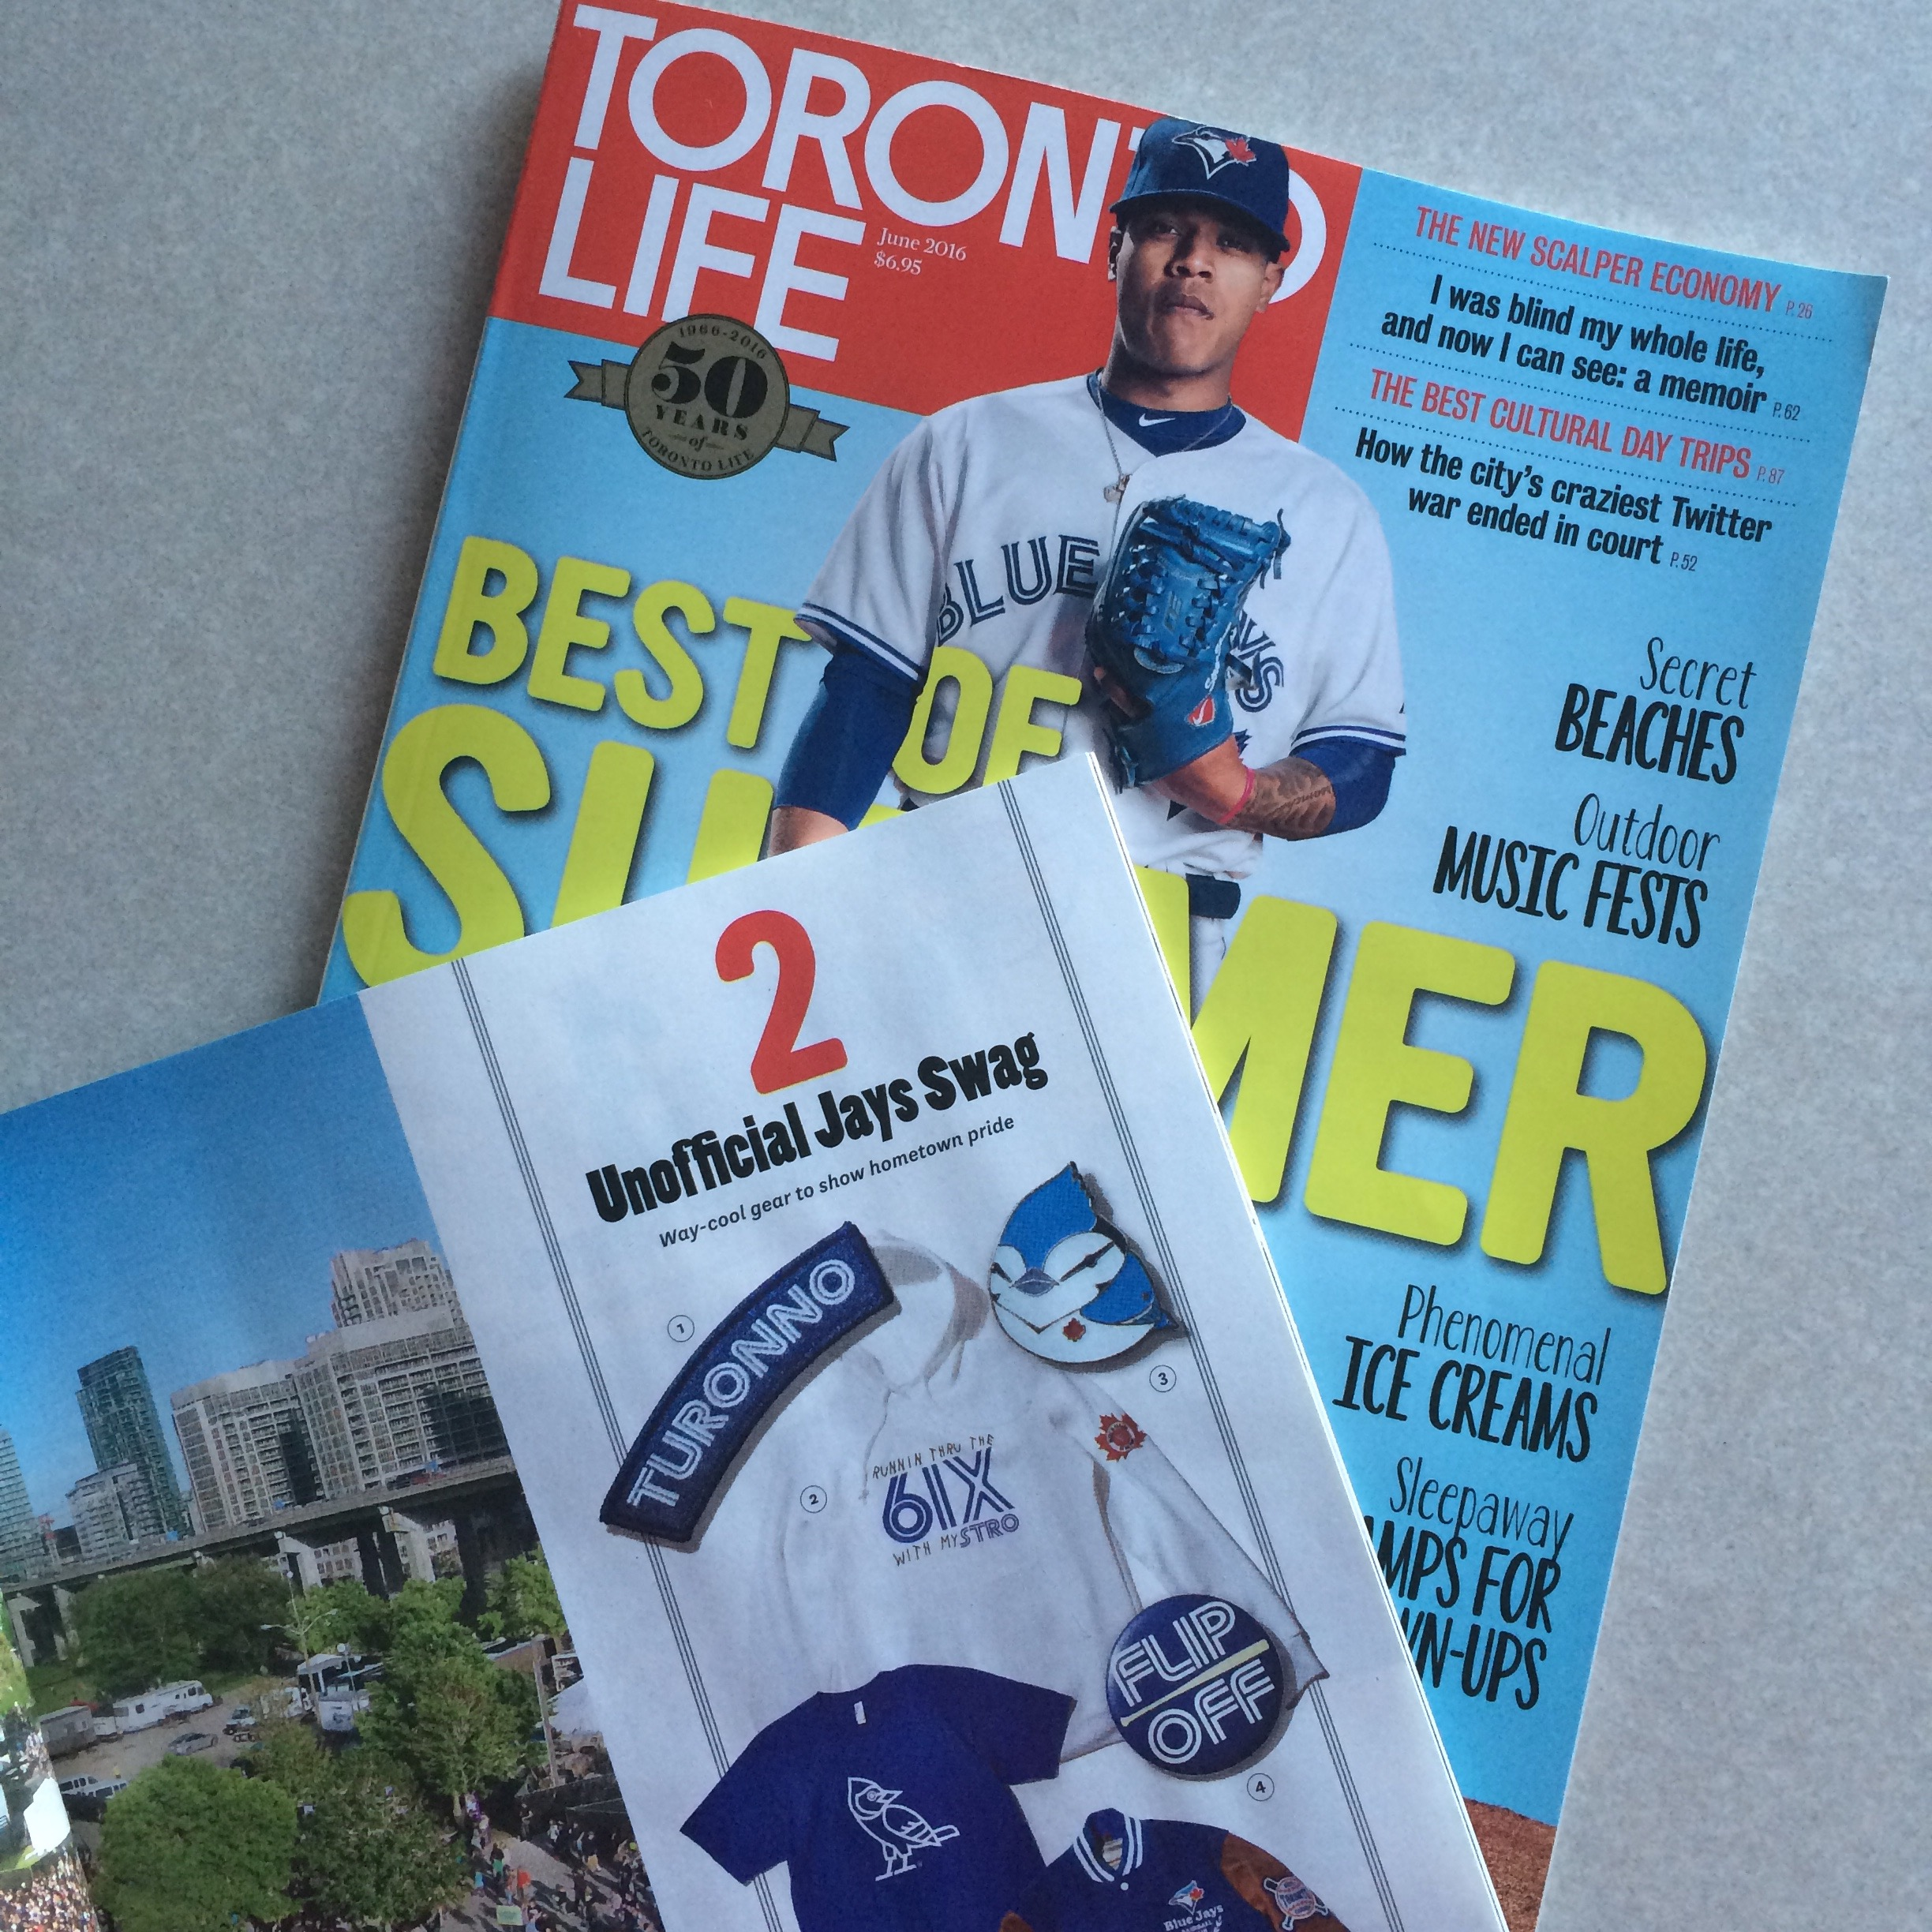 Our Runnin Thru The 6ix With My Stro design was featured in the June issue of Toronto Life Magazine! Unofficial Jays gear that fans love. - FULL ARTICLE